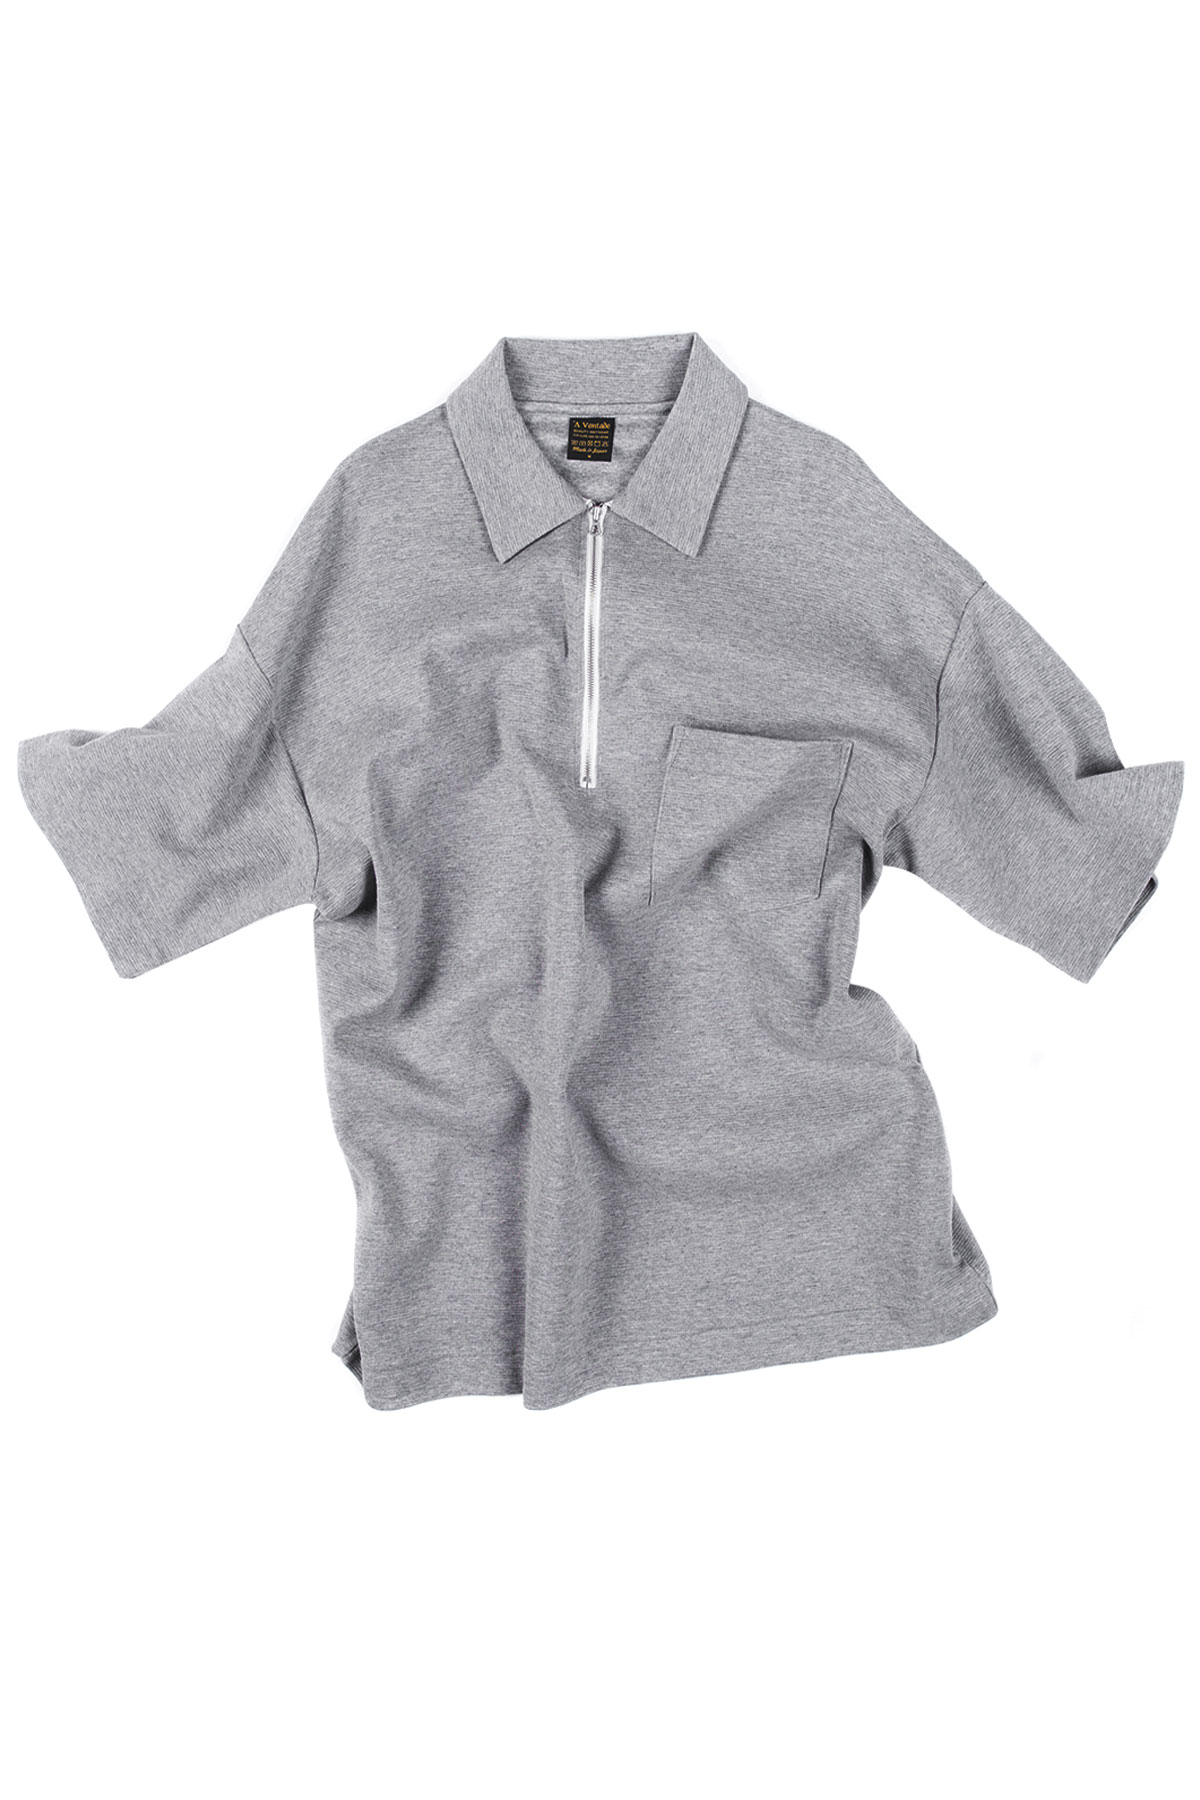 A vontade : Half Zip Polo S/S (Grey)